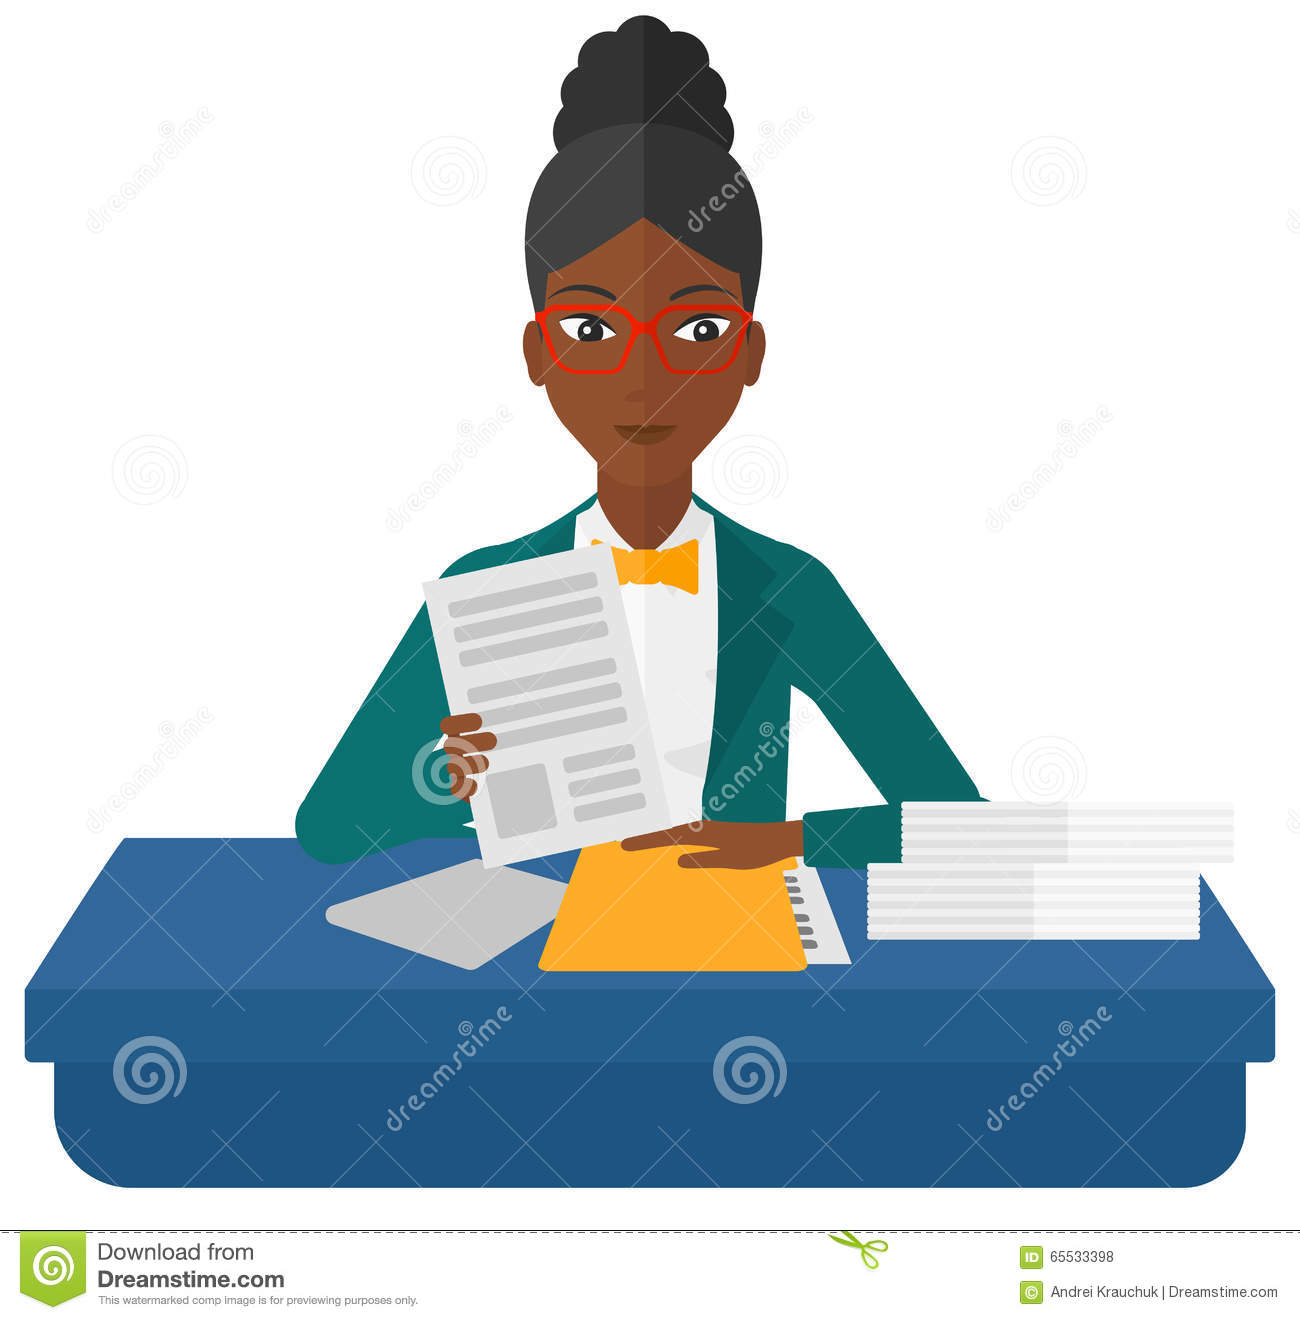 HR Manager Checking Files Stock Vector. Illustration Of